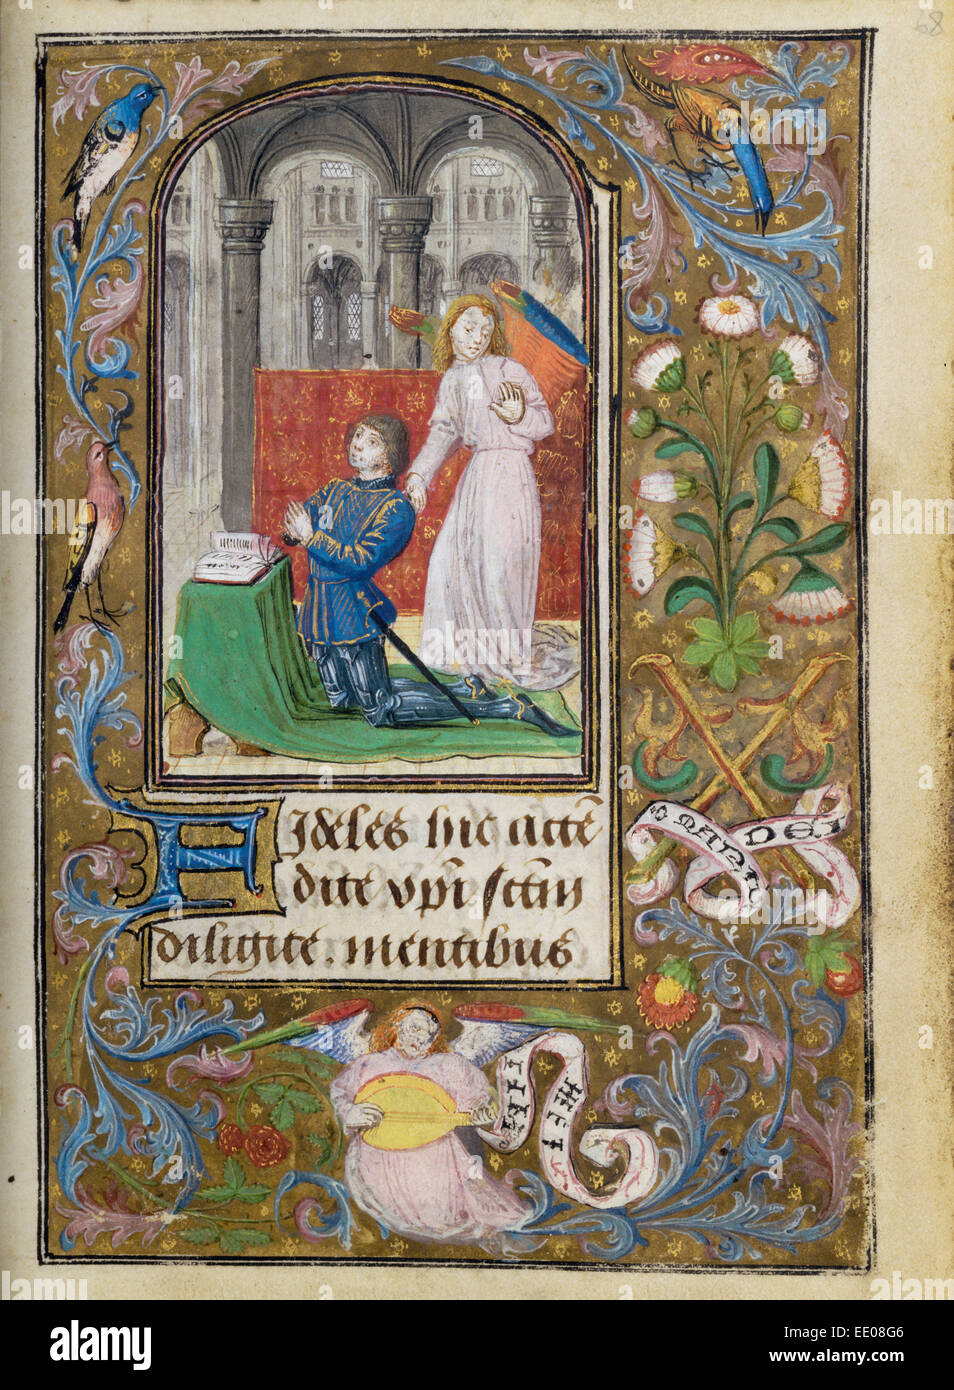 Charles the Bold Presented by an Angel; Lieven van Lathem, Flemish, about 1430 - 1493, active 1454 - 1493; Ghent Stock Photo